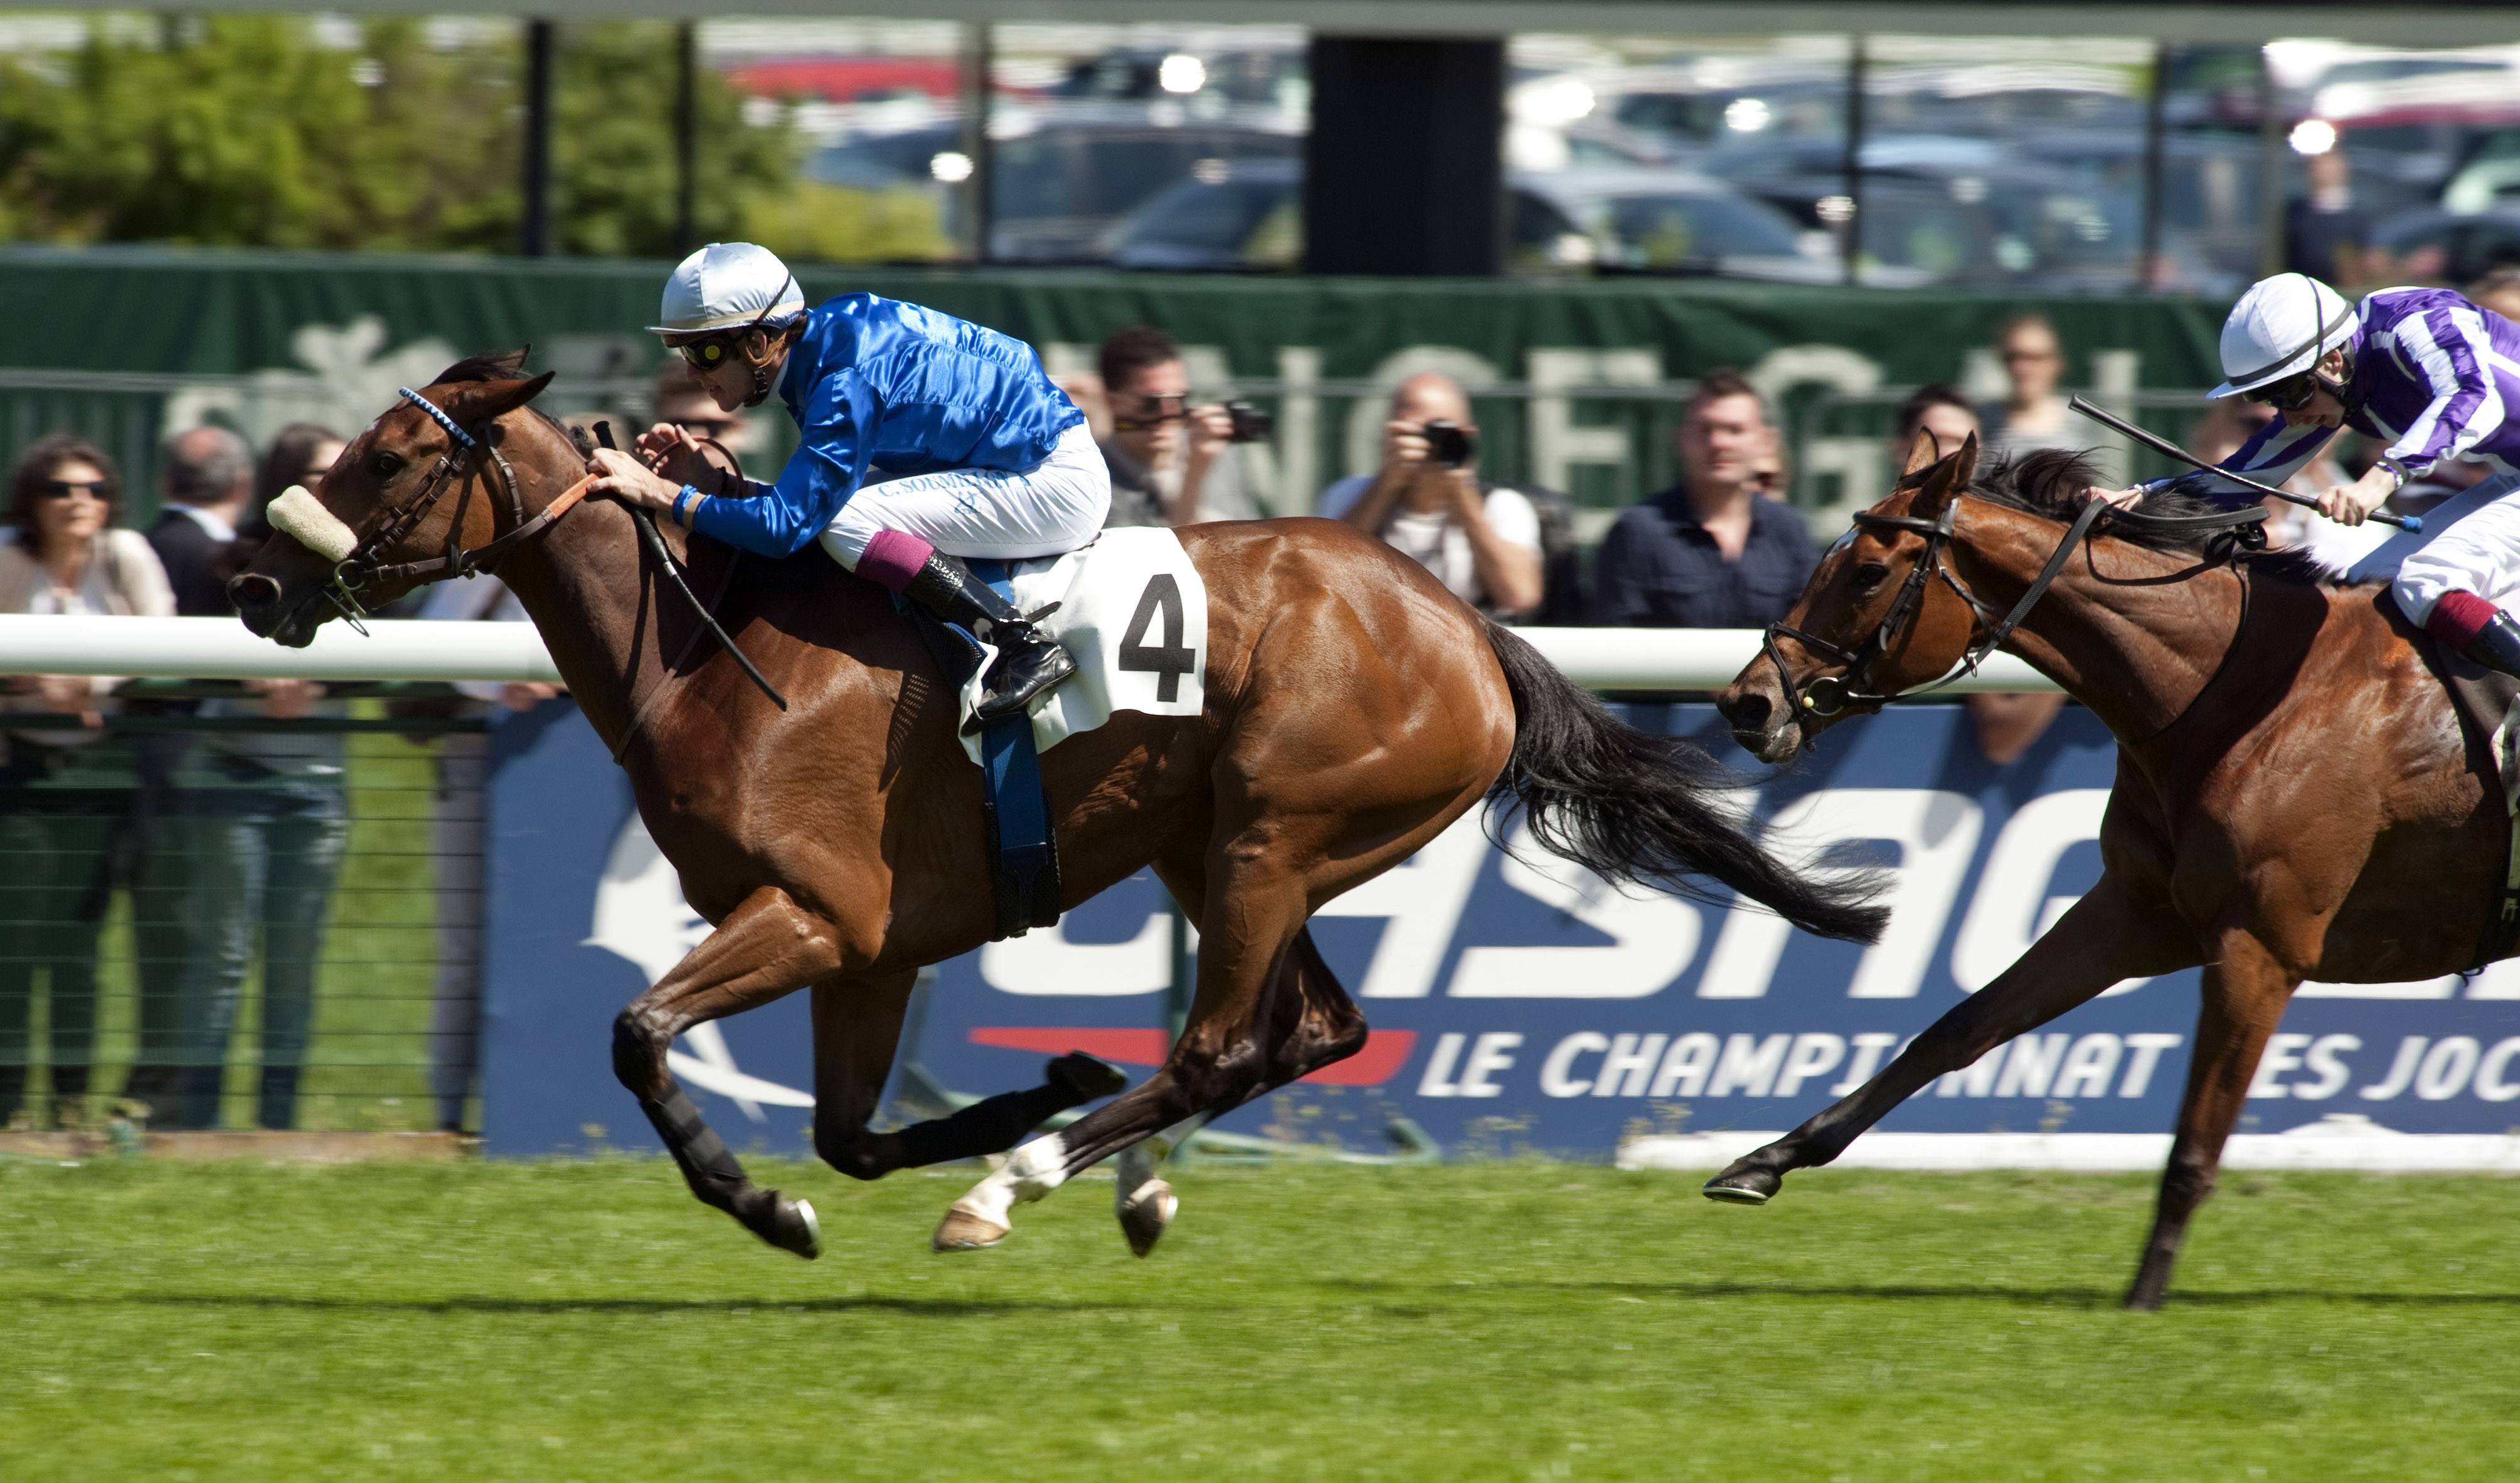 Beauty Parlour winning the 2012 Poules d'Essai des Pouliches at Longchamp